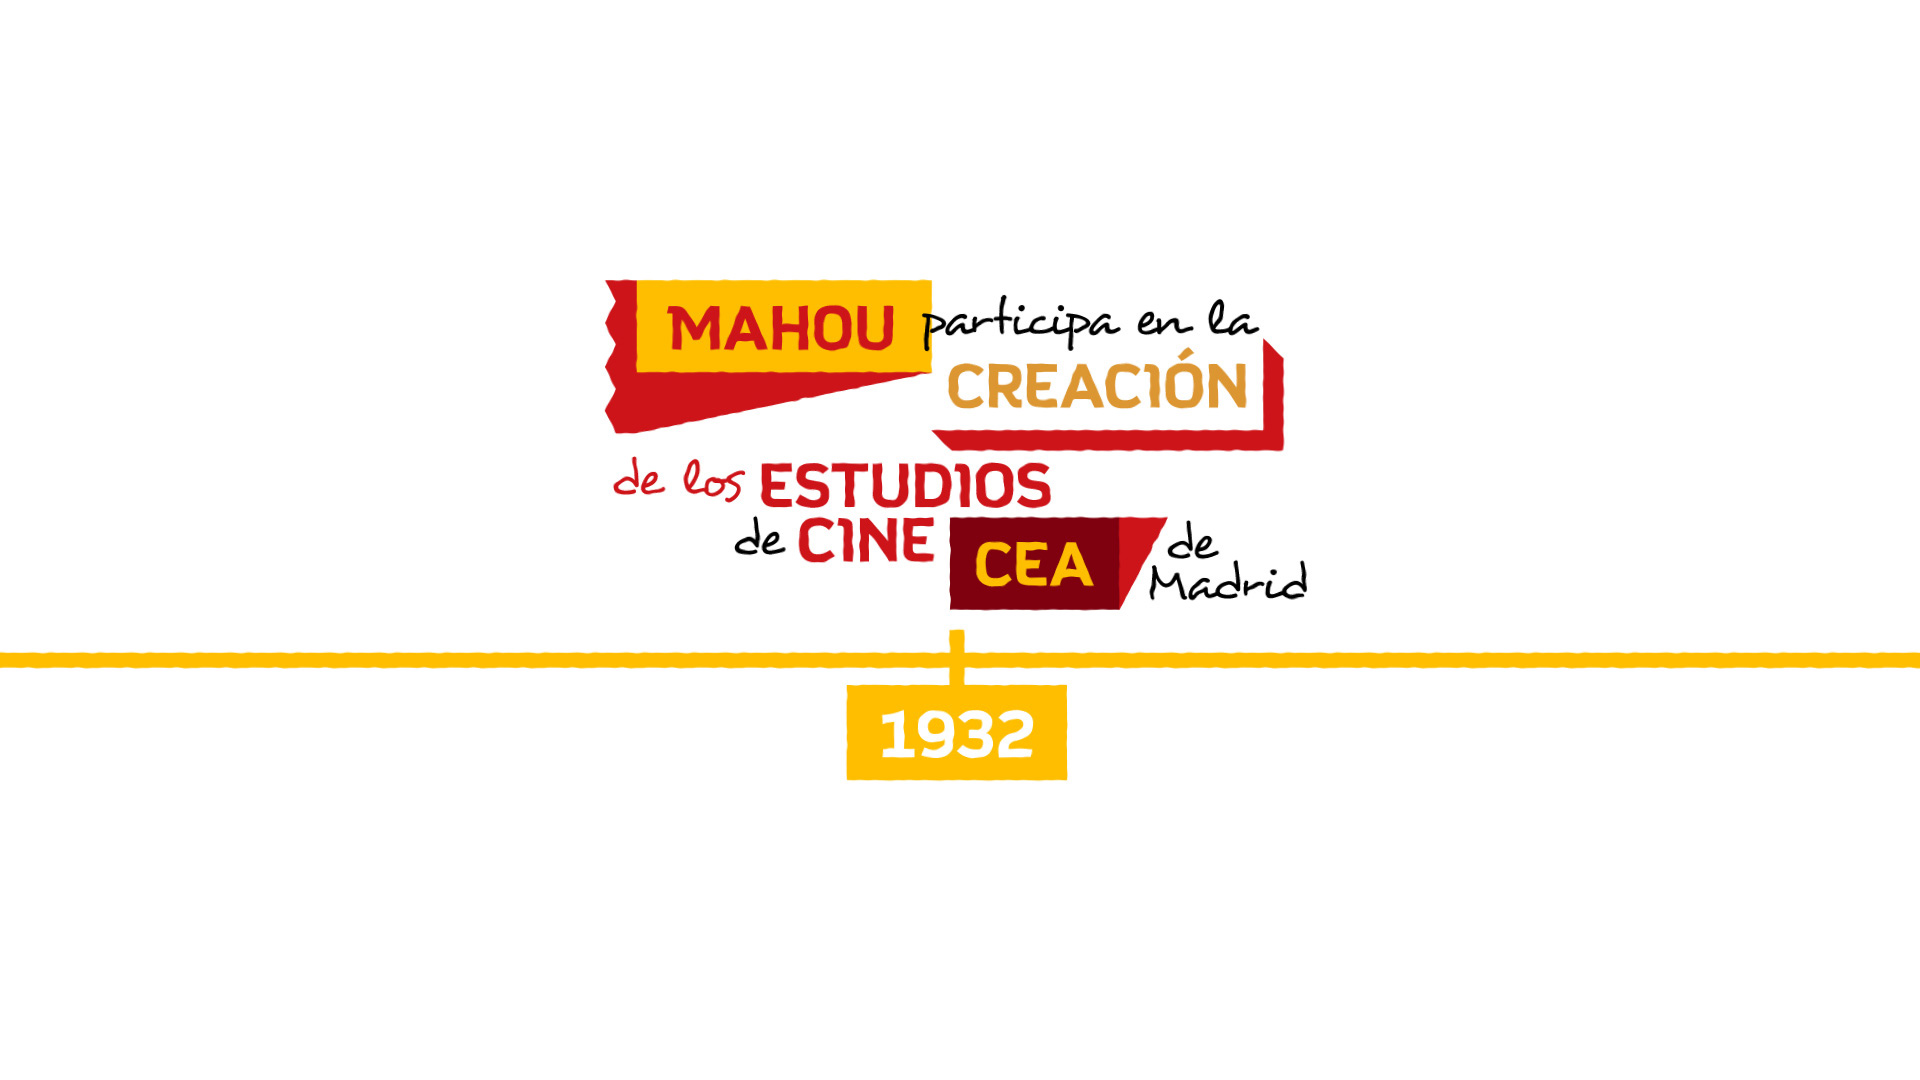 mahou factoria infografia isometrico motion graphics animacion productora estudio madrid